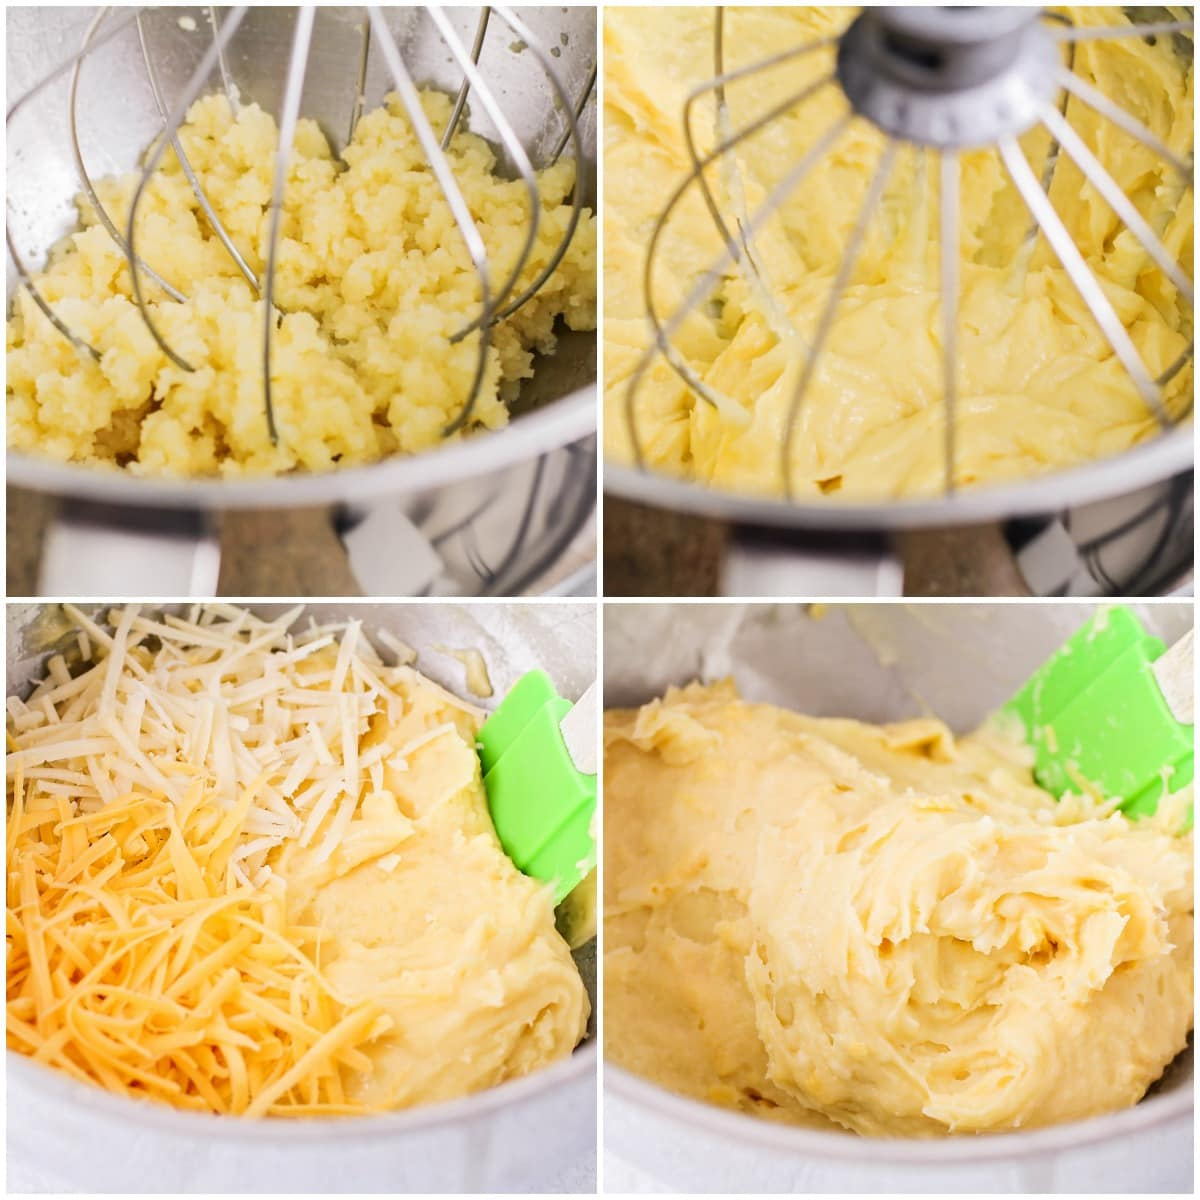 Mixing cheese into cheese puff dough